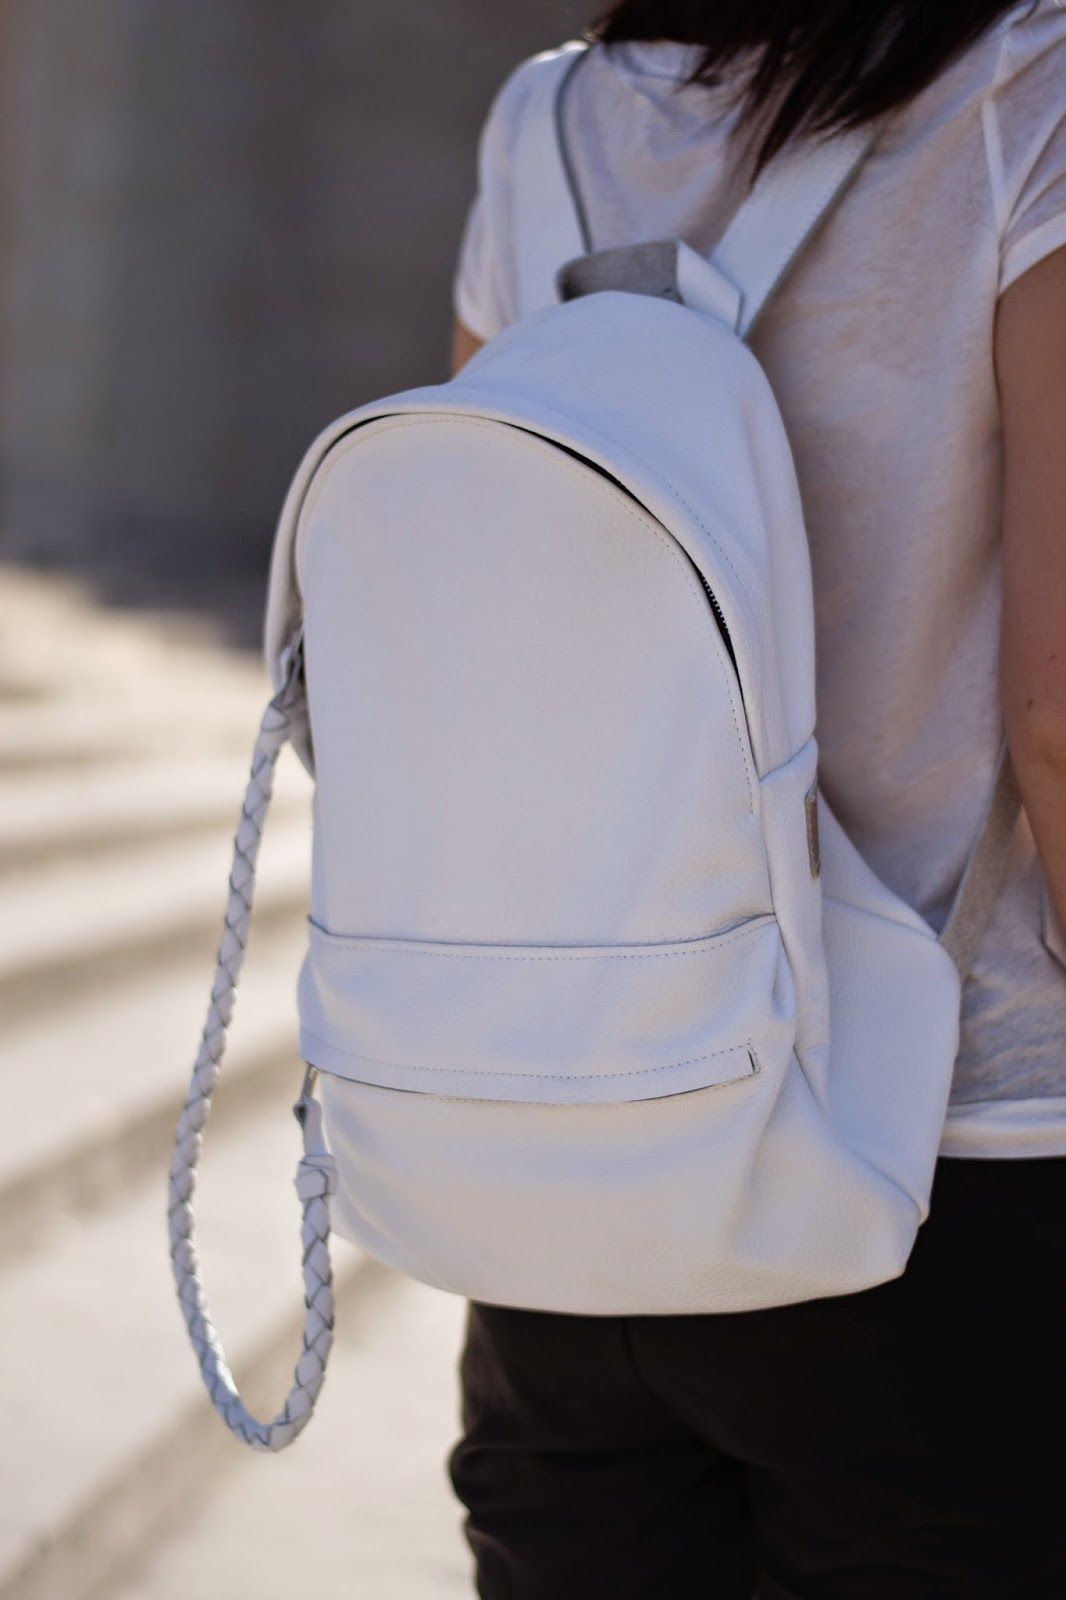 hip-e backpacks